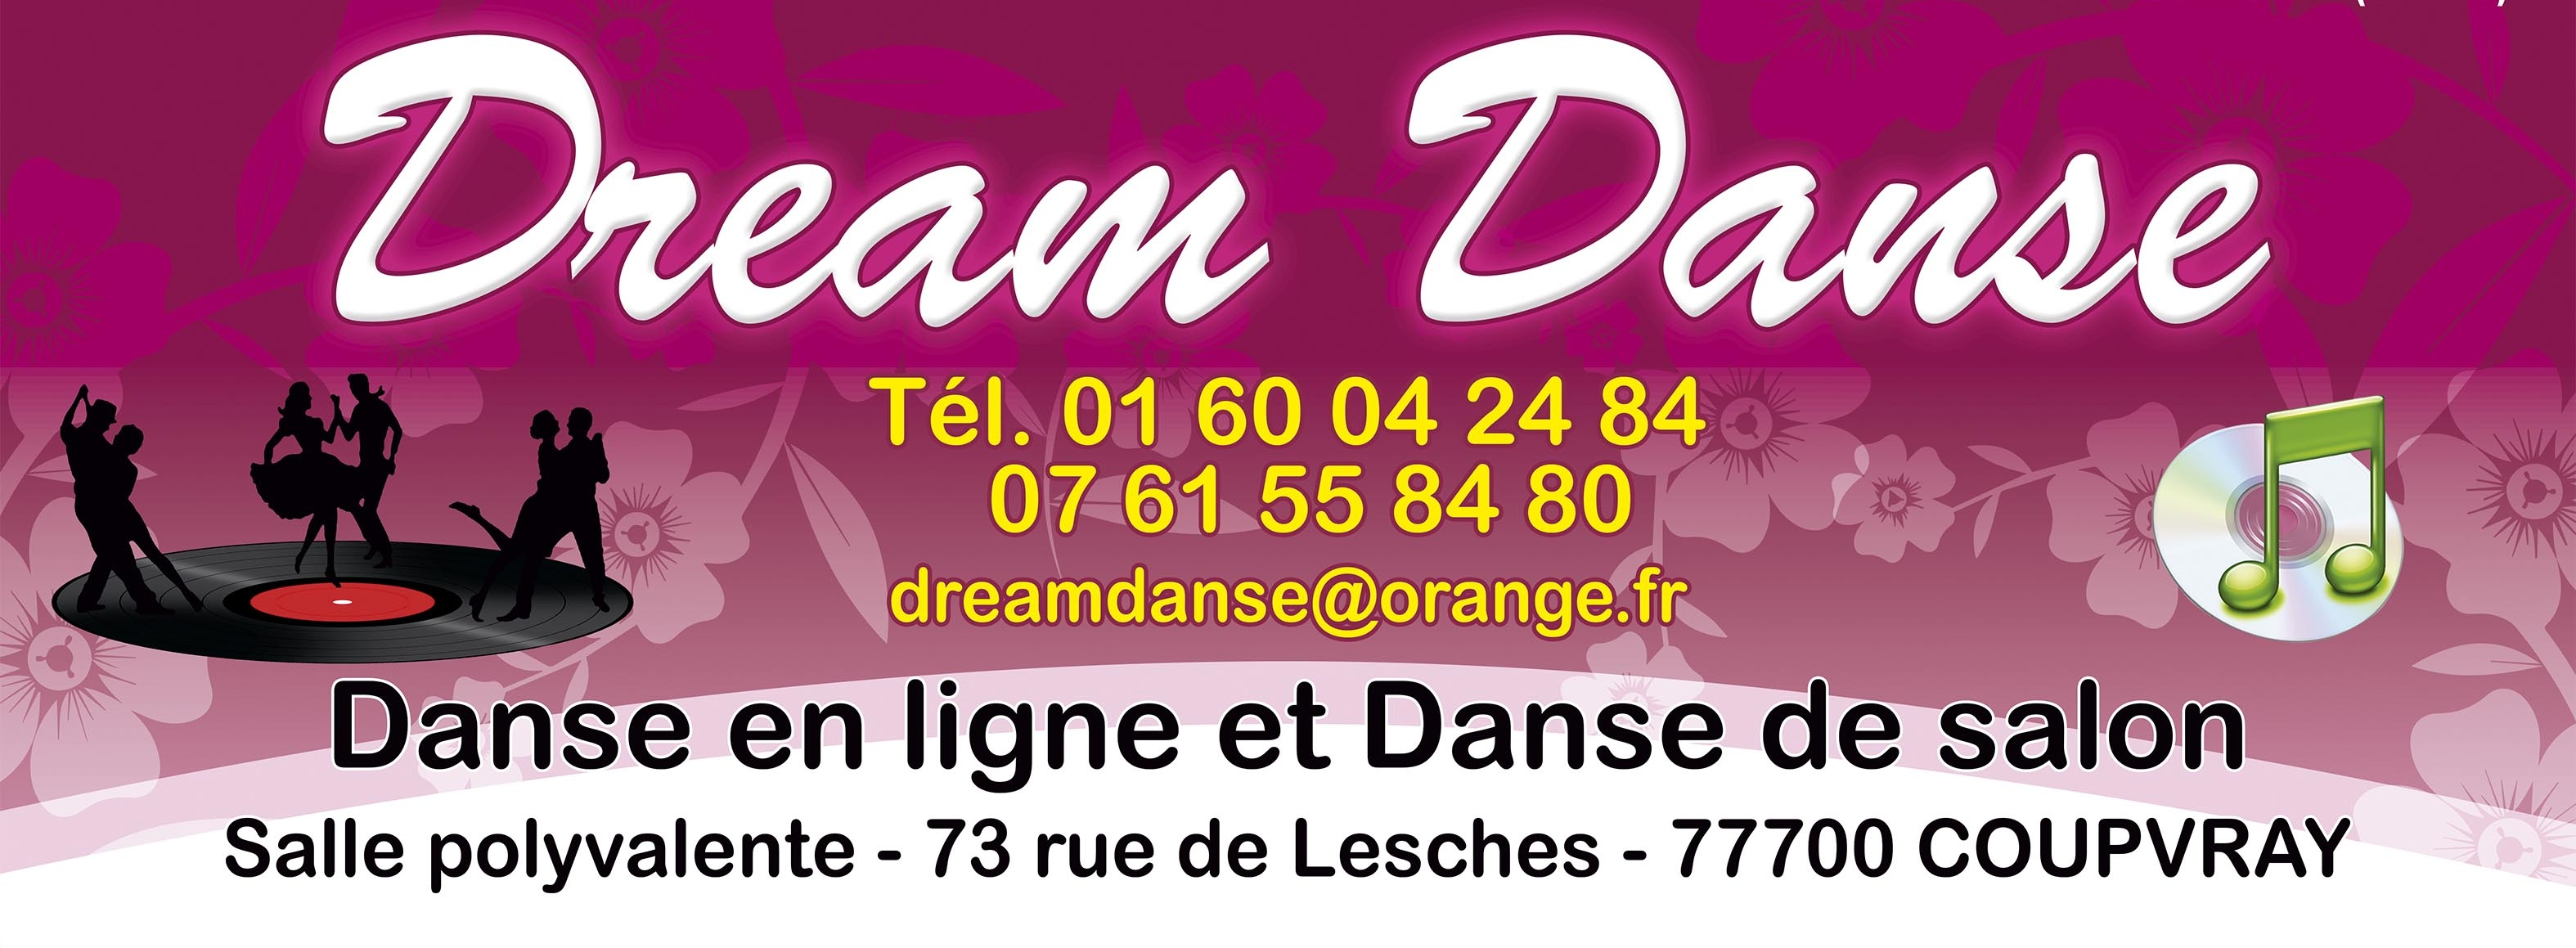 dream danse